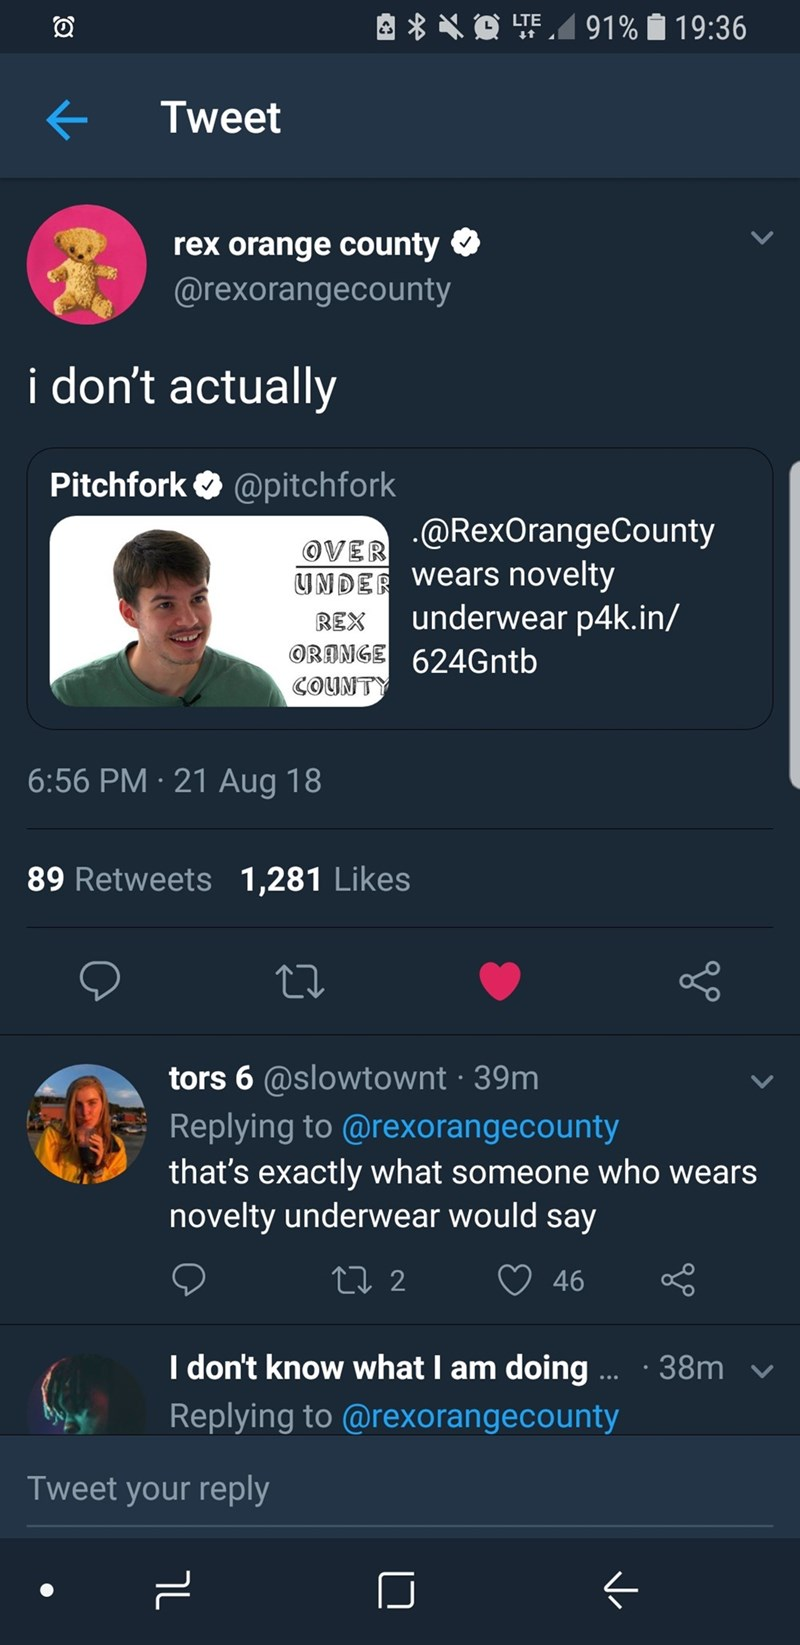 twitter Tweet rex orange county @rexorangecounty i don't actually Pitchfork @pitchfork oVER @RexOrangeCounty UNDER Wears novelty underwear p4k.in/ REX ORANGE 624G ntb COUNTY 6:56 PM 21 Aug 18 89 Retweets 1,281 Likes tors 6 @slowtownt 39m Replying to @rexorangecounty that's exactly what someone who wears novelty underwear would say L2 46 I don't know what I am doing .. 38m Replying to @rexorangecounty Tweet your reply